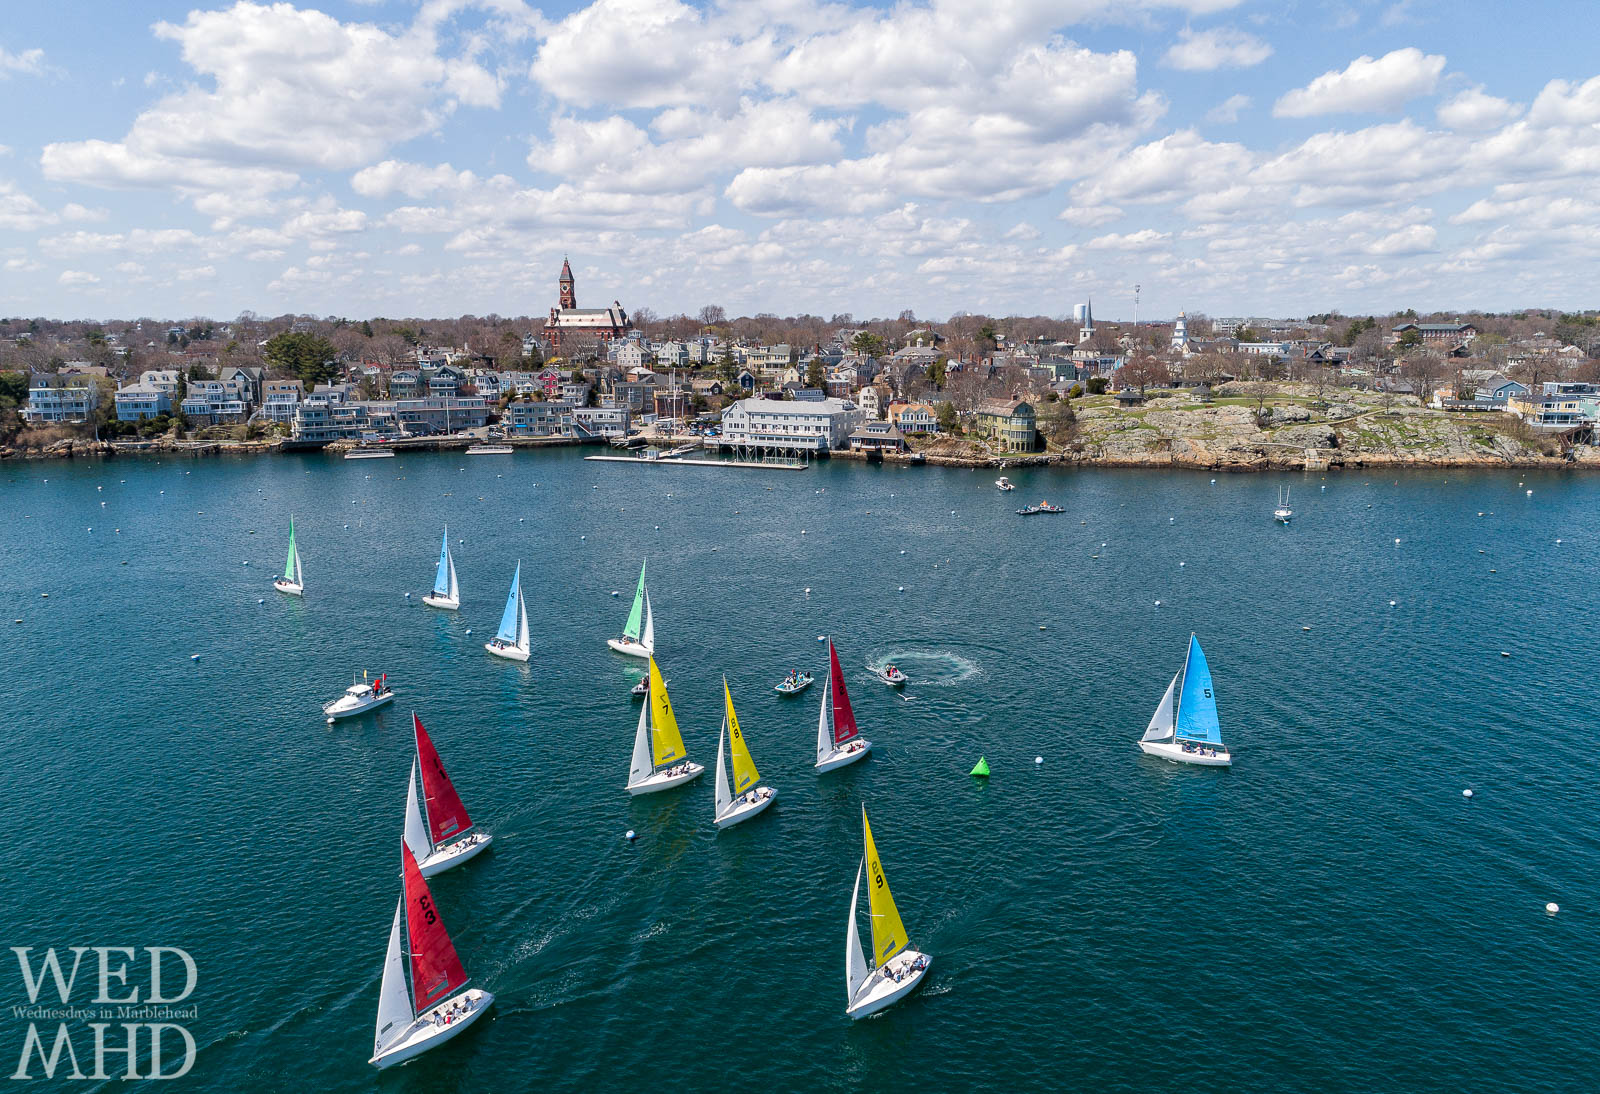 The Boston Yacht Club's 20th annual Jackson Cup race takes place inside Marblehead Harbor on a perfect April day